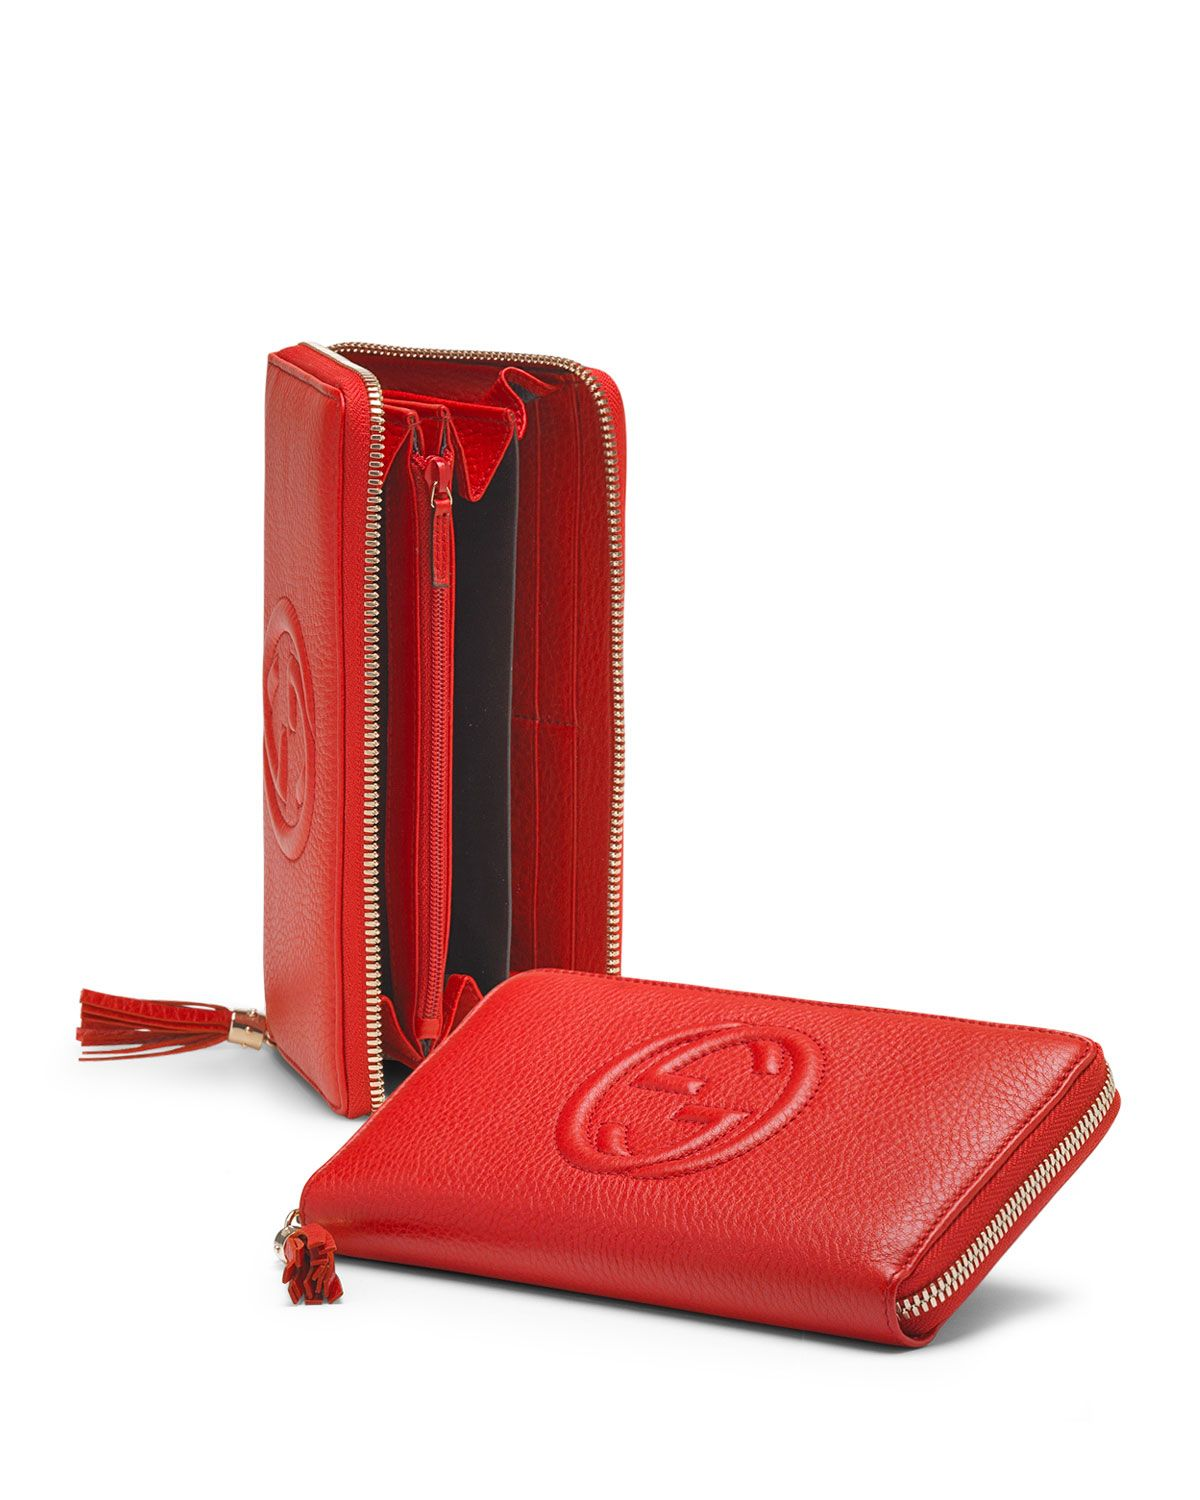 6e77f0c213b9 Soho Leather Zip-Around Wallet, Red - Gucci | *Handbags, Wallets ...